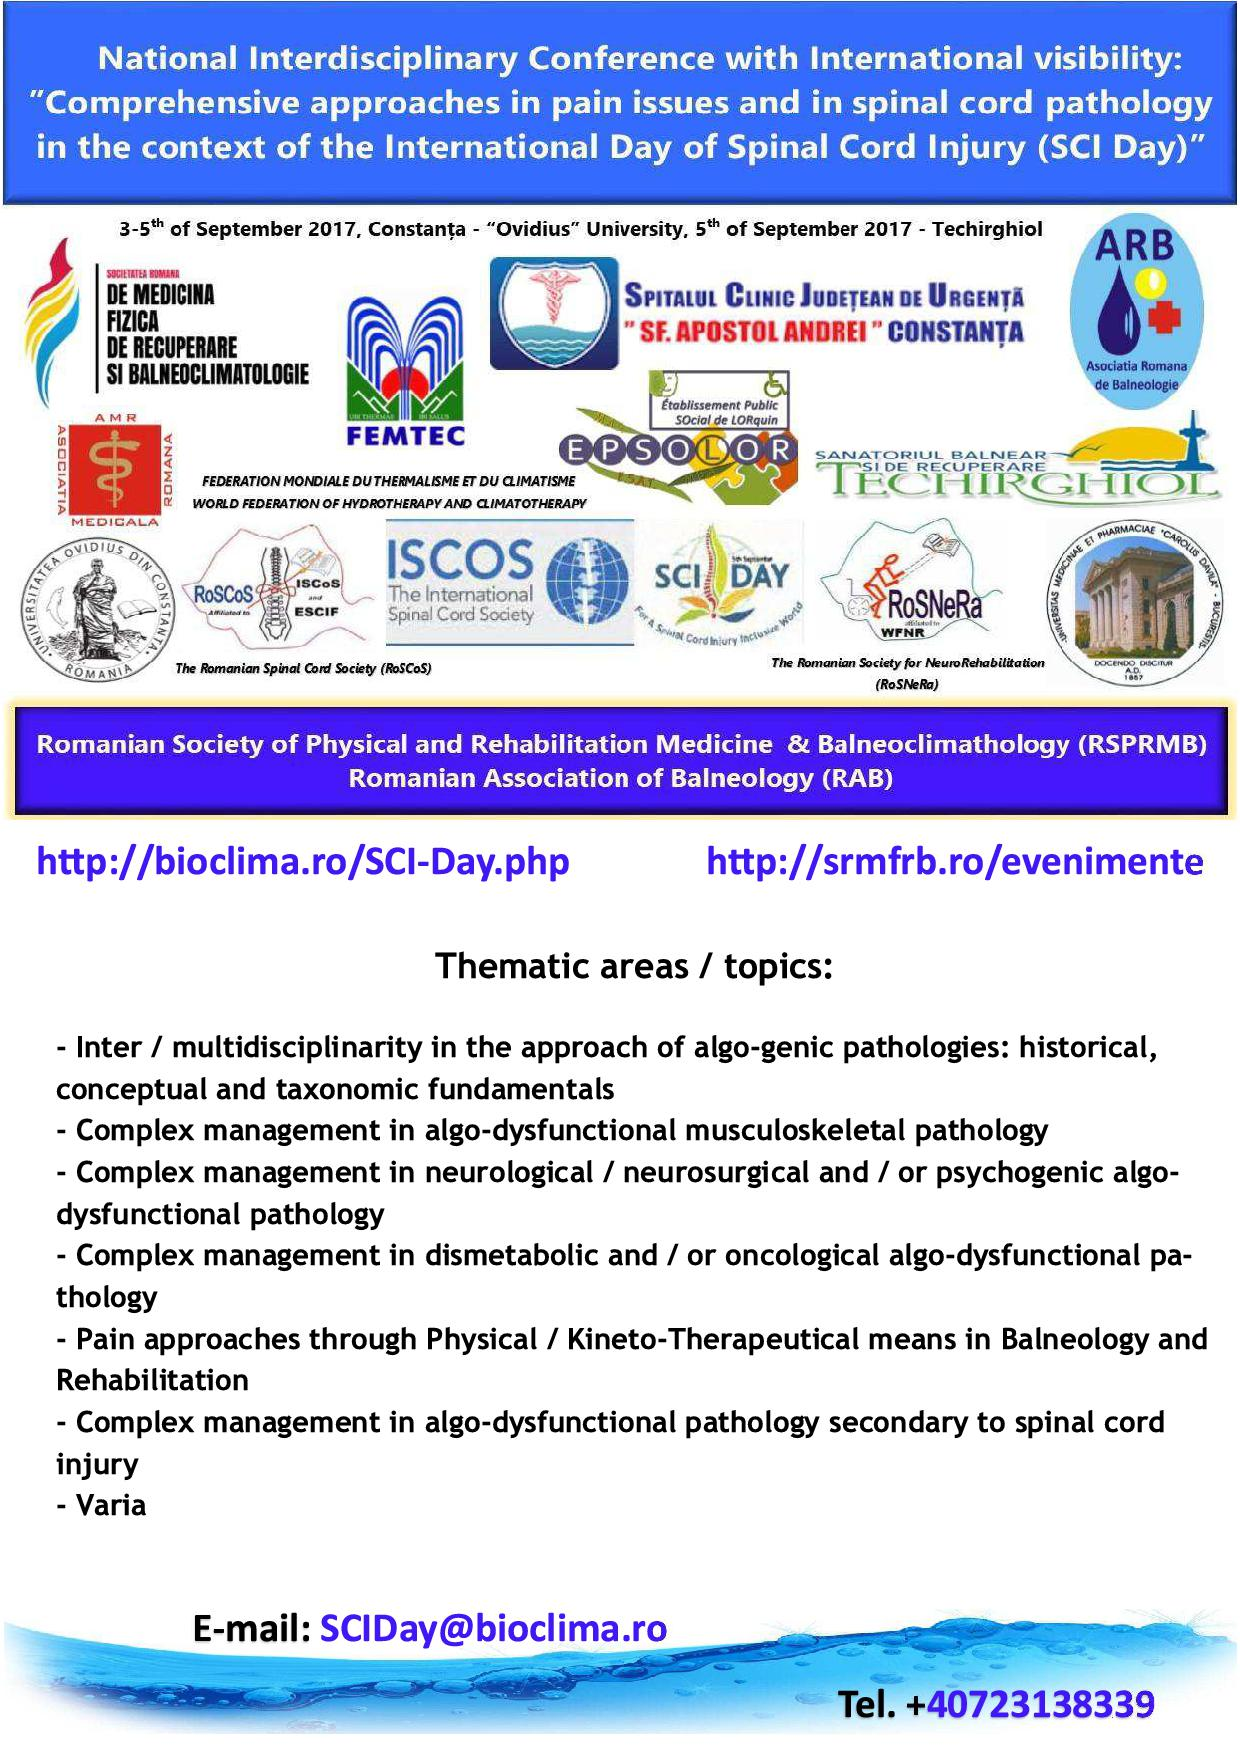 National Interdisciplinary Conference with International Visibility: 'Comprehensive approaches in pain issues and in spinal cord pathology in the context of the International Day of Spinal Cord Injury (SCI Day)'